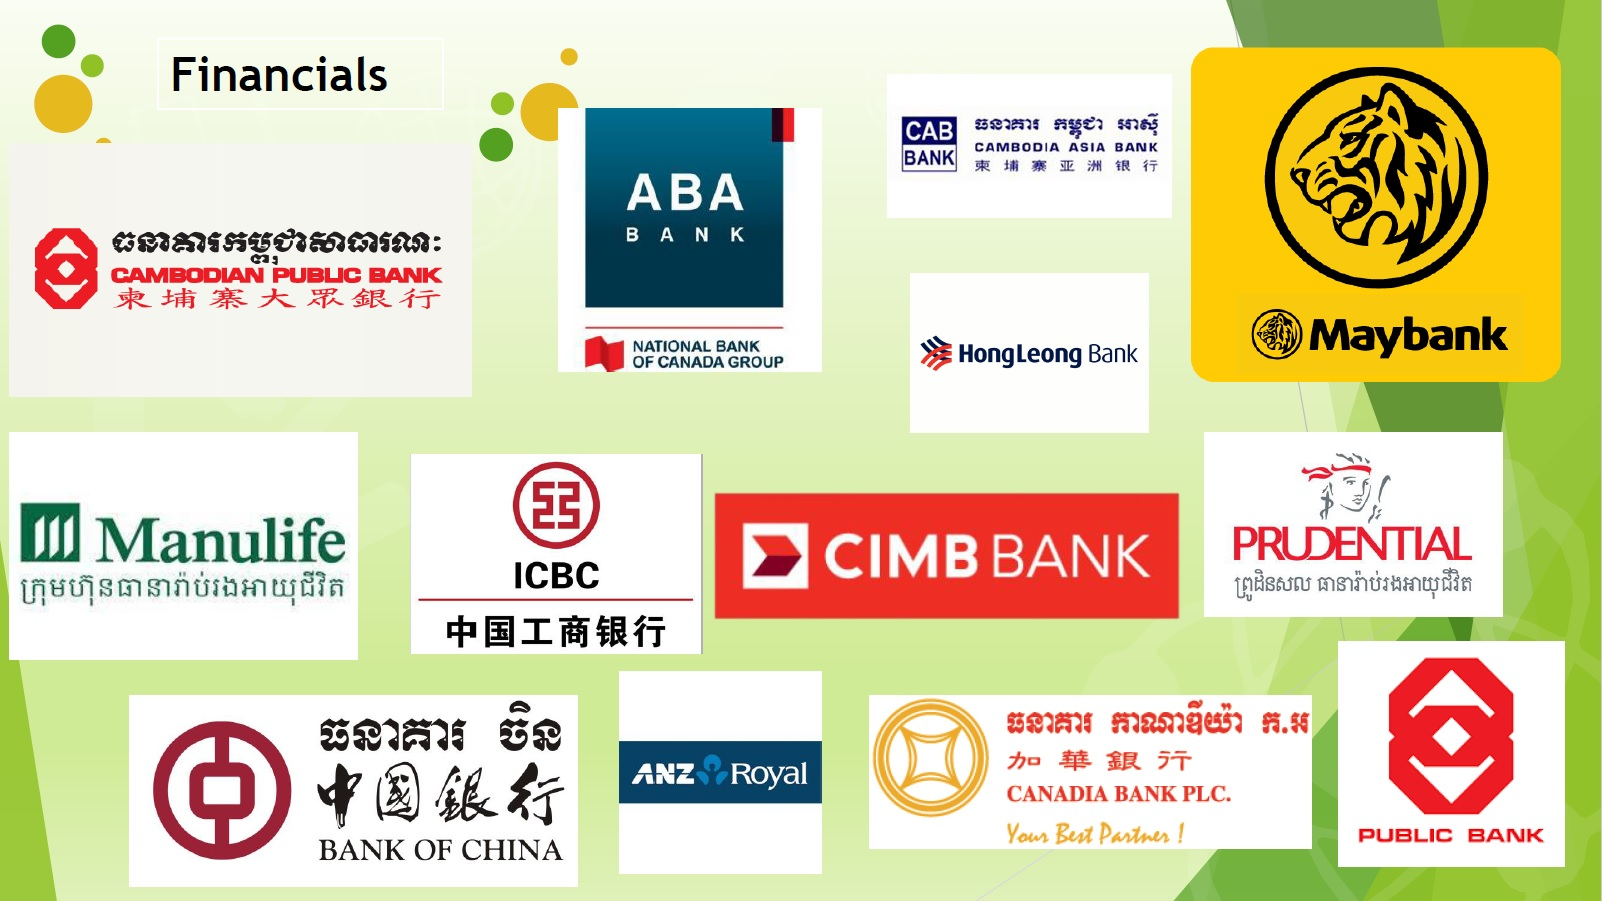 Financial Companies in Cambodia